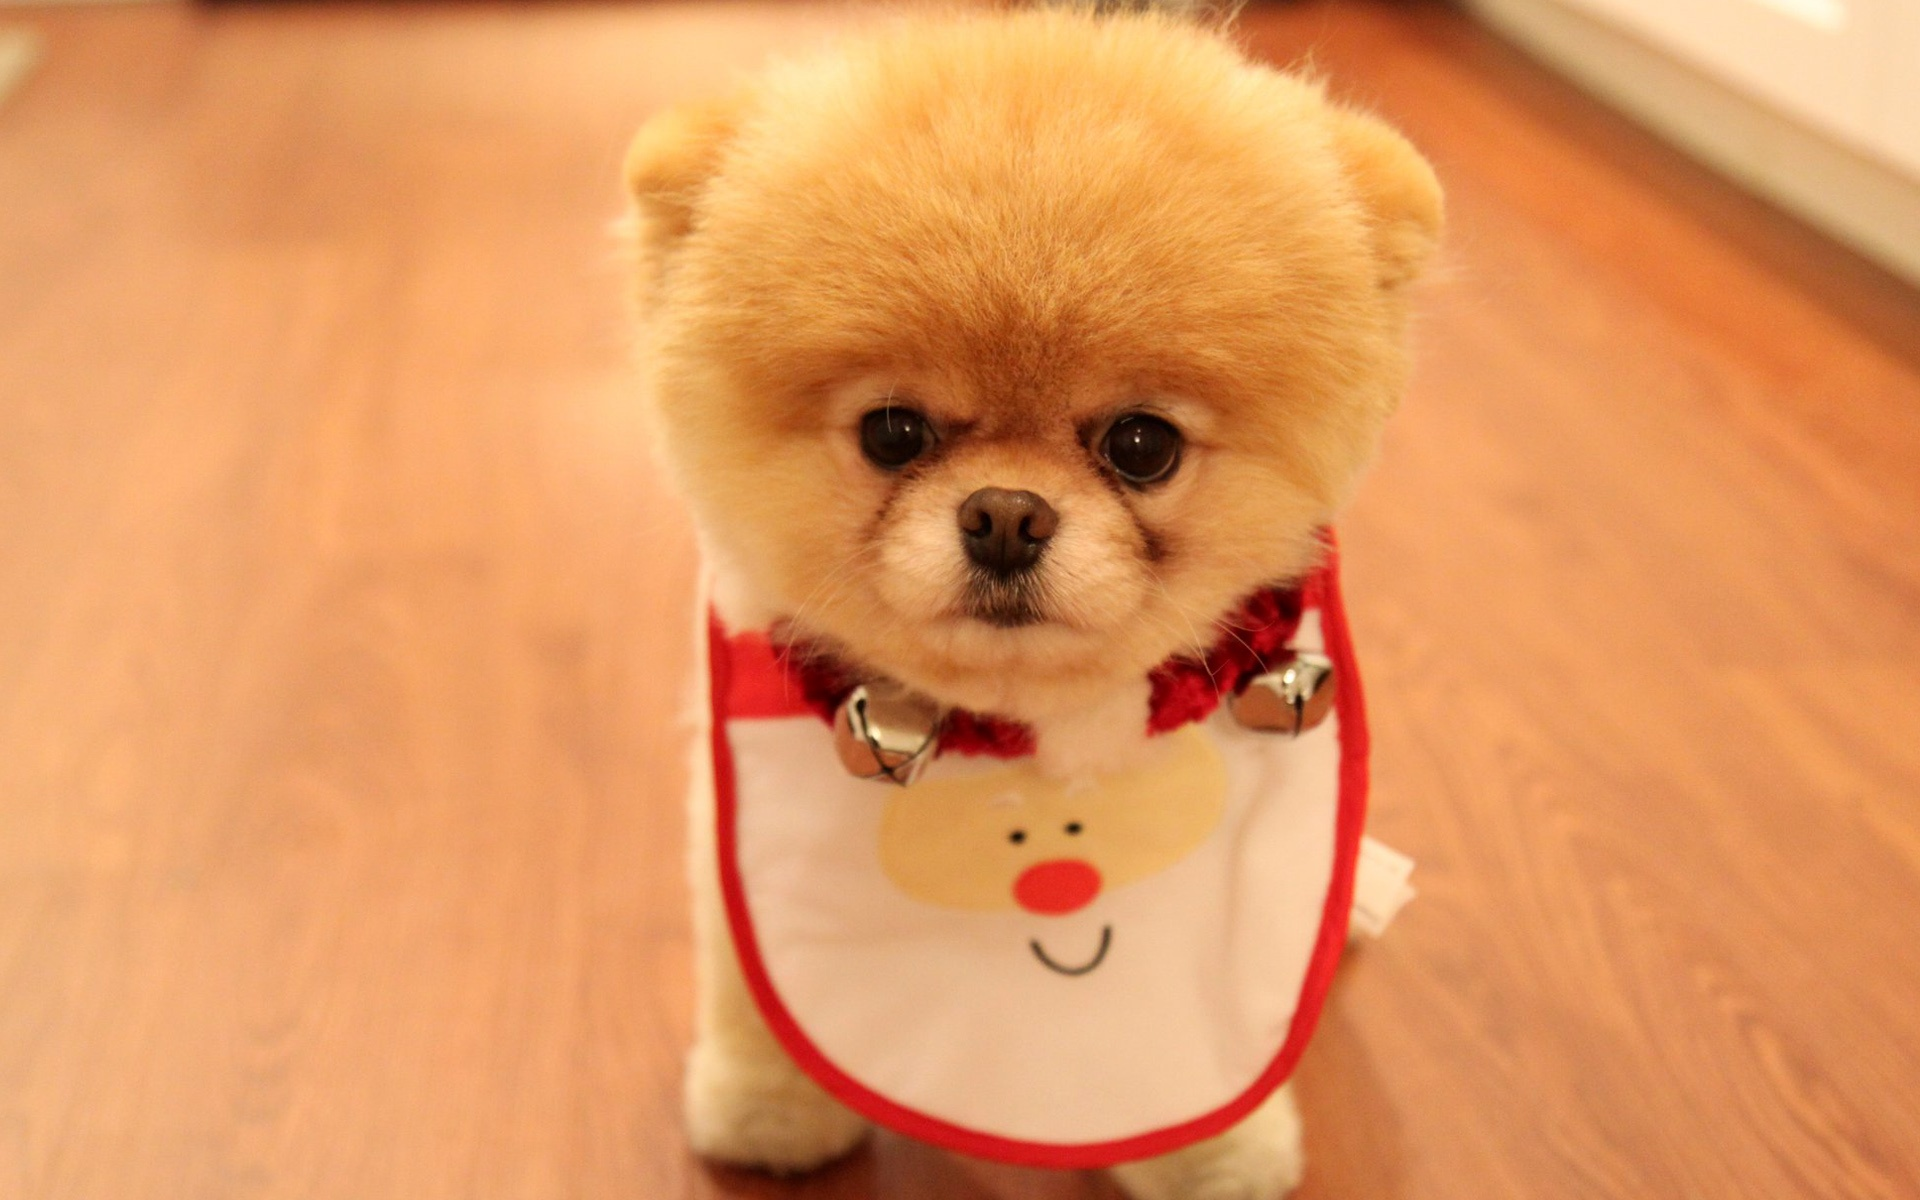 cute dog christmas wallpapers in jpg format for free download